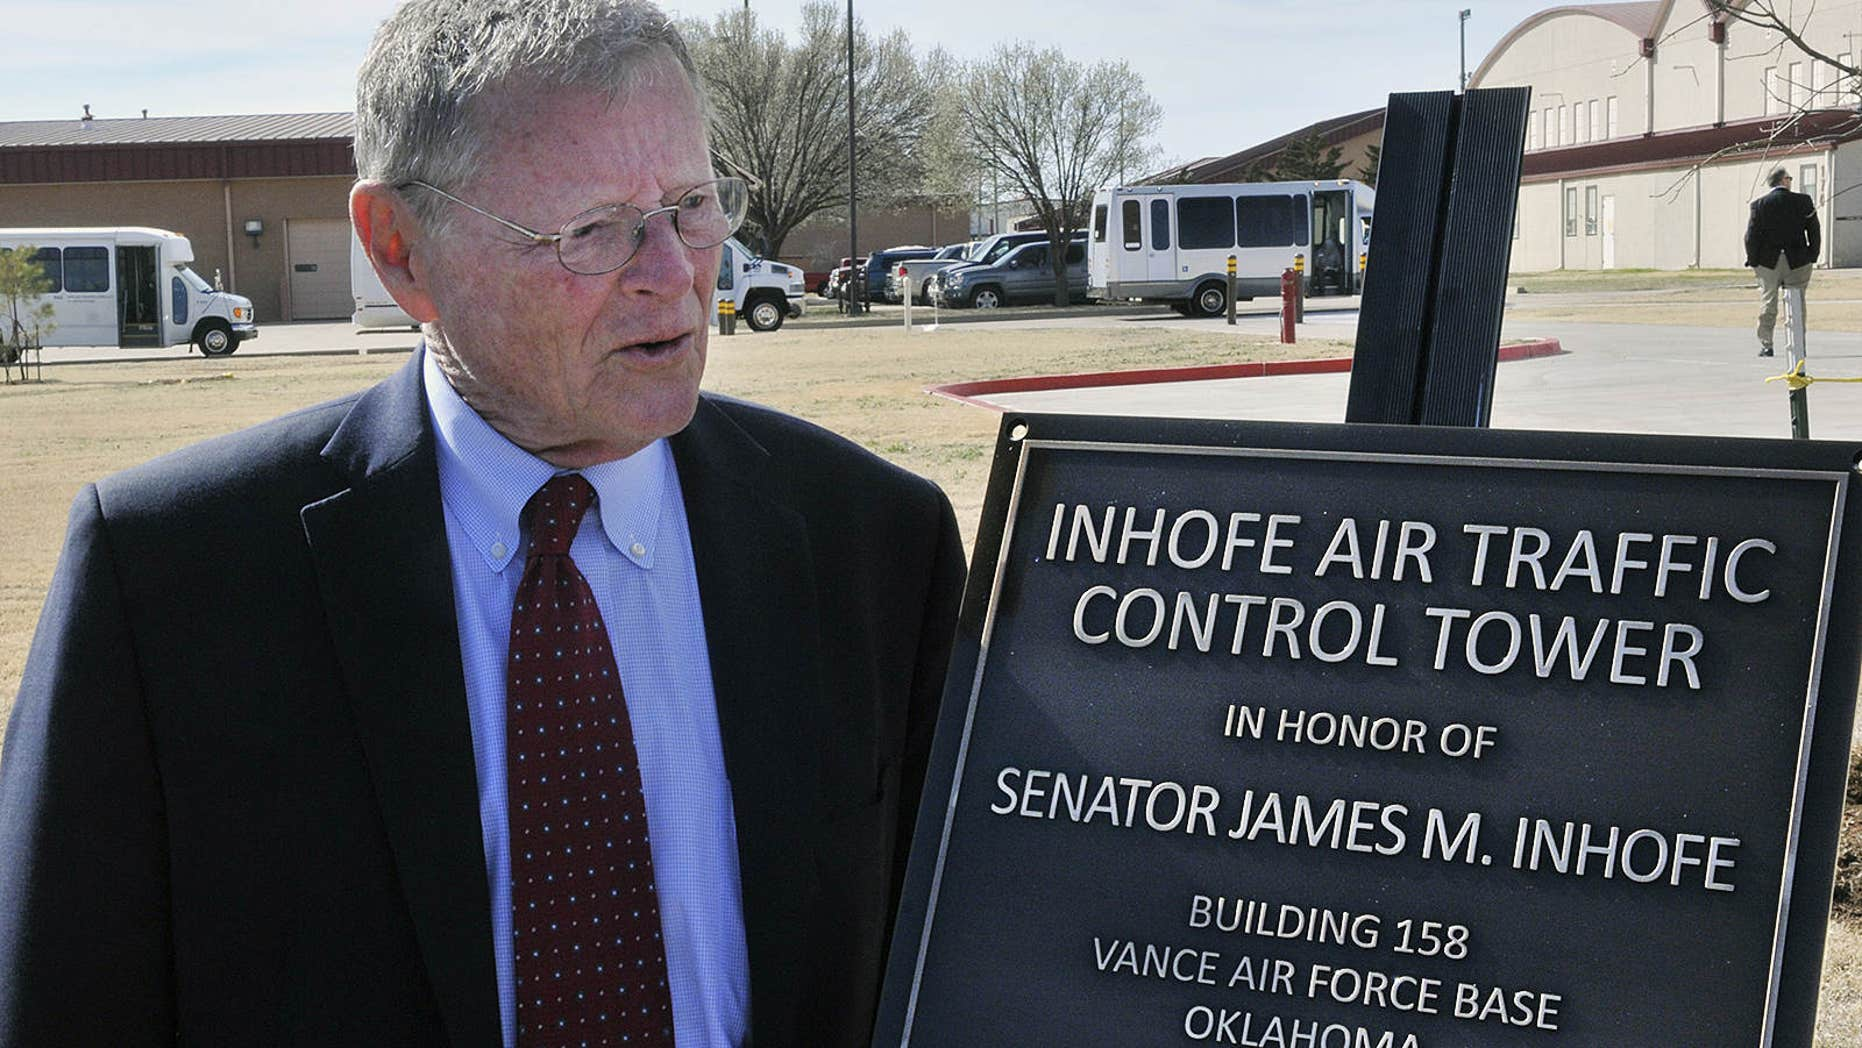 FILE - In this March 4, 2016 file photo, U.S. Senator James Inhofe stands next to a plaque bearing his name after a dedication ceremony for the new air traffic control tower at Vance Air Force Base in Enid, Oklahoma.